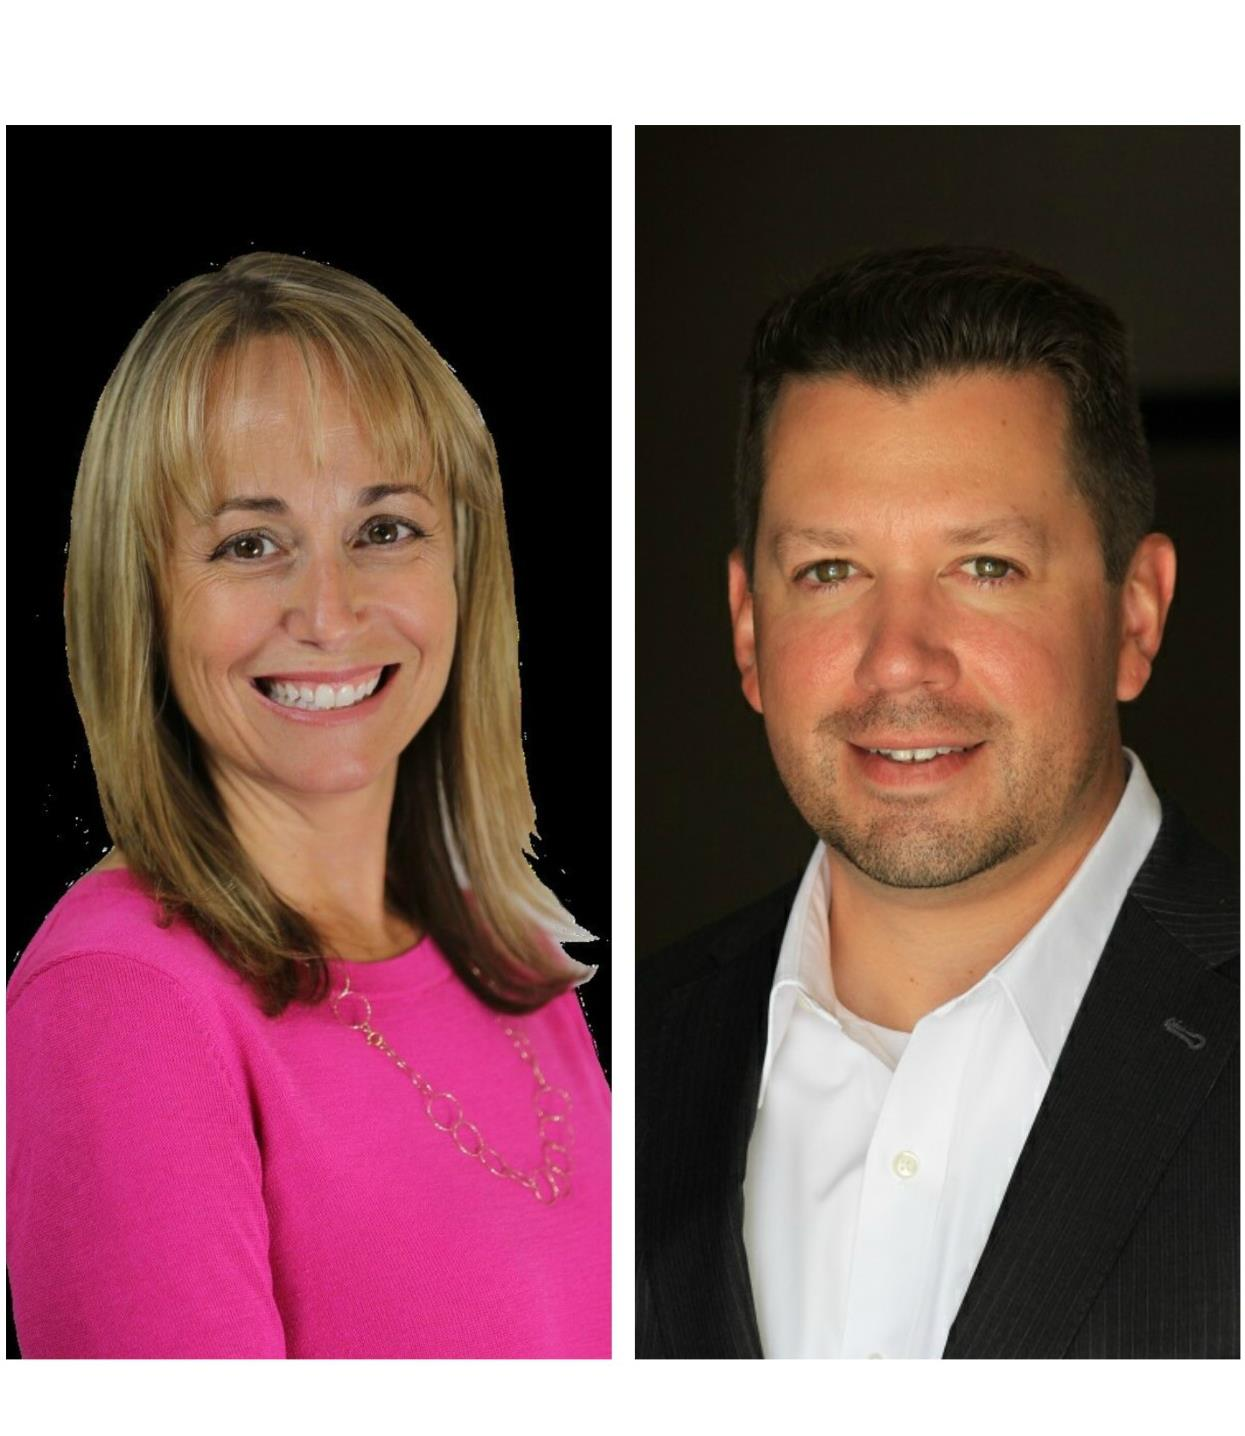 Denise & Dusty Denise & Dusty is a licensed real estate agent in Camarillo CA